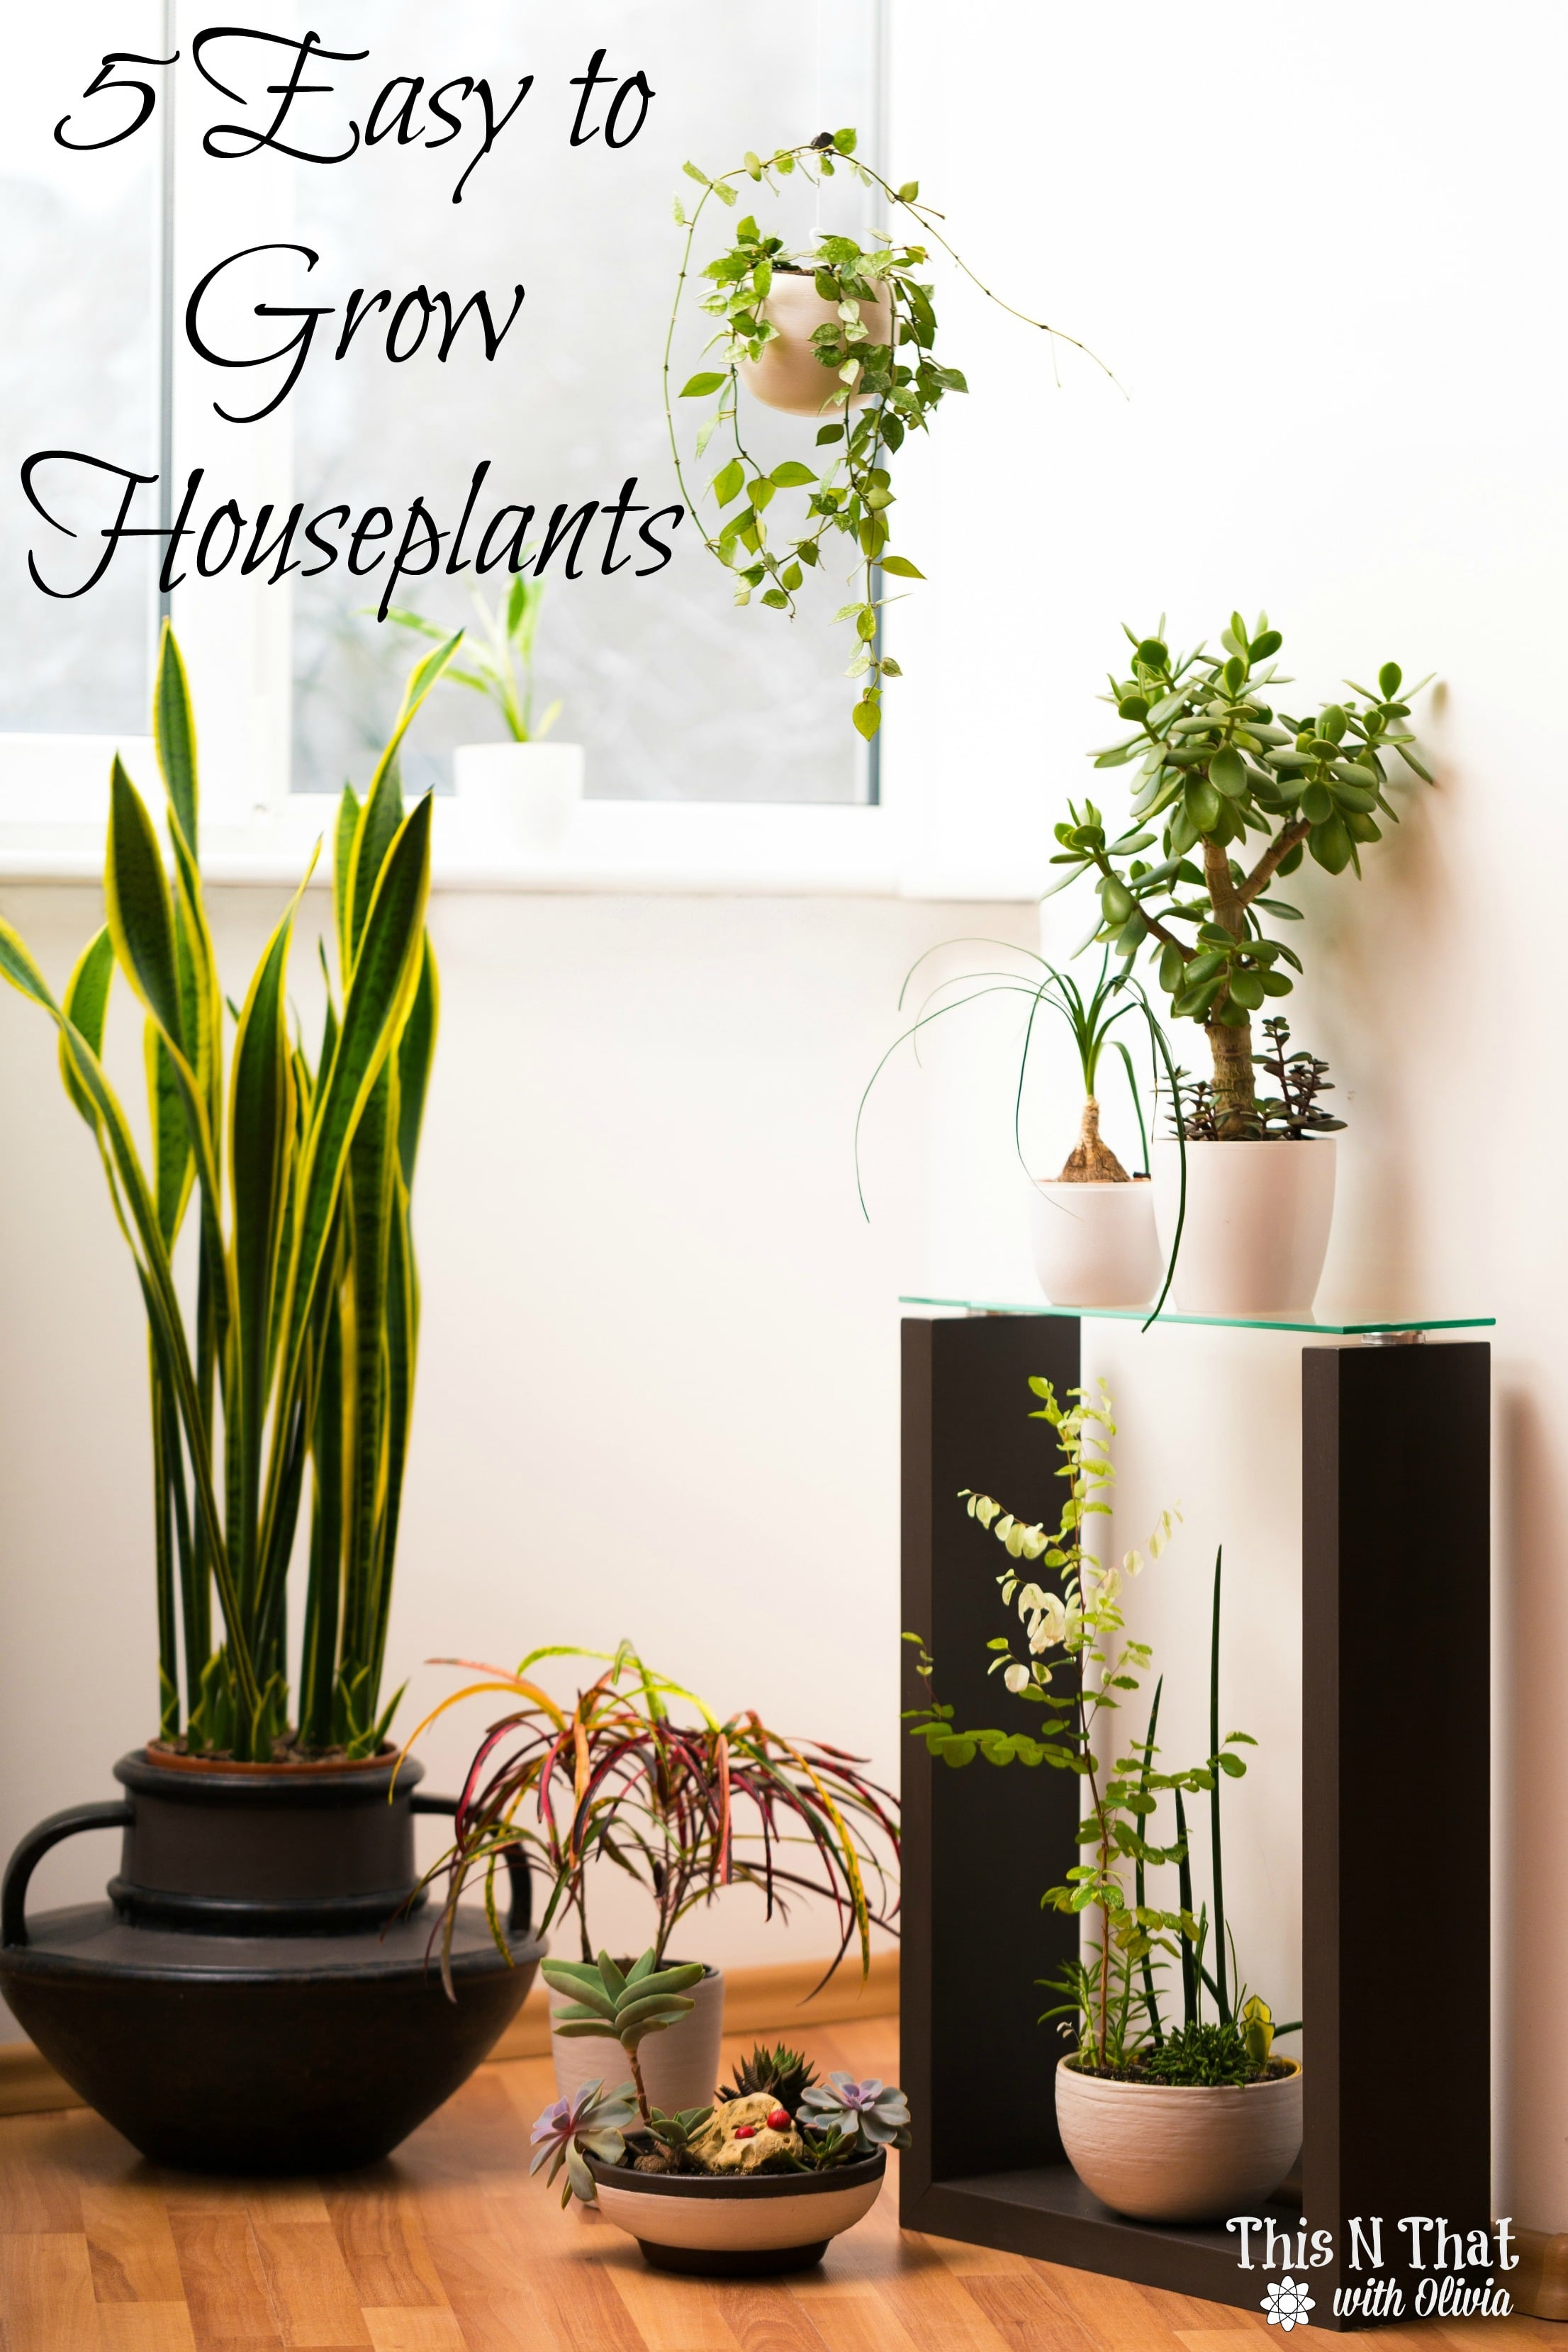 5 Easy to Grow Houseplants!